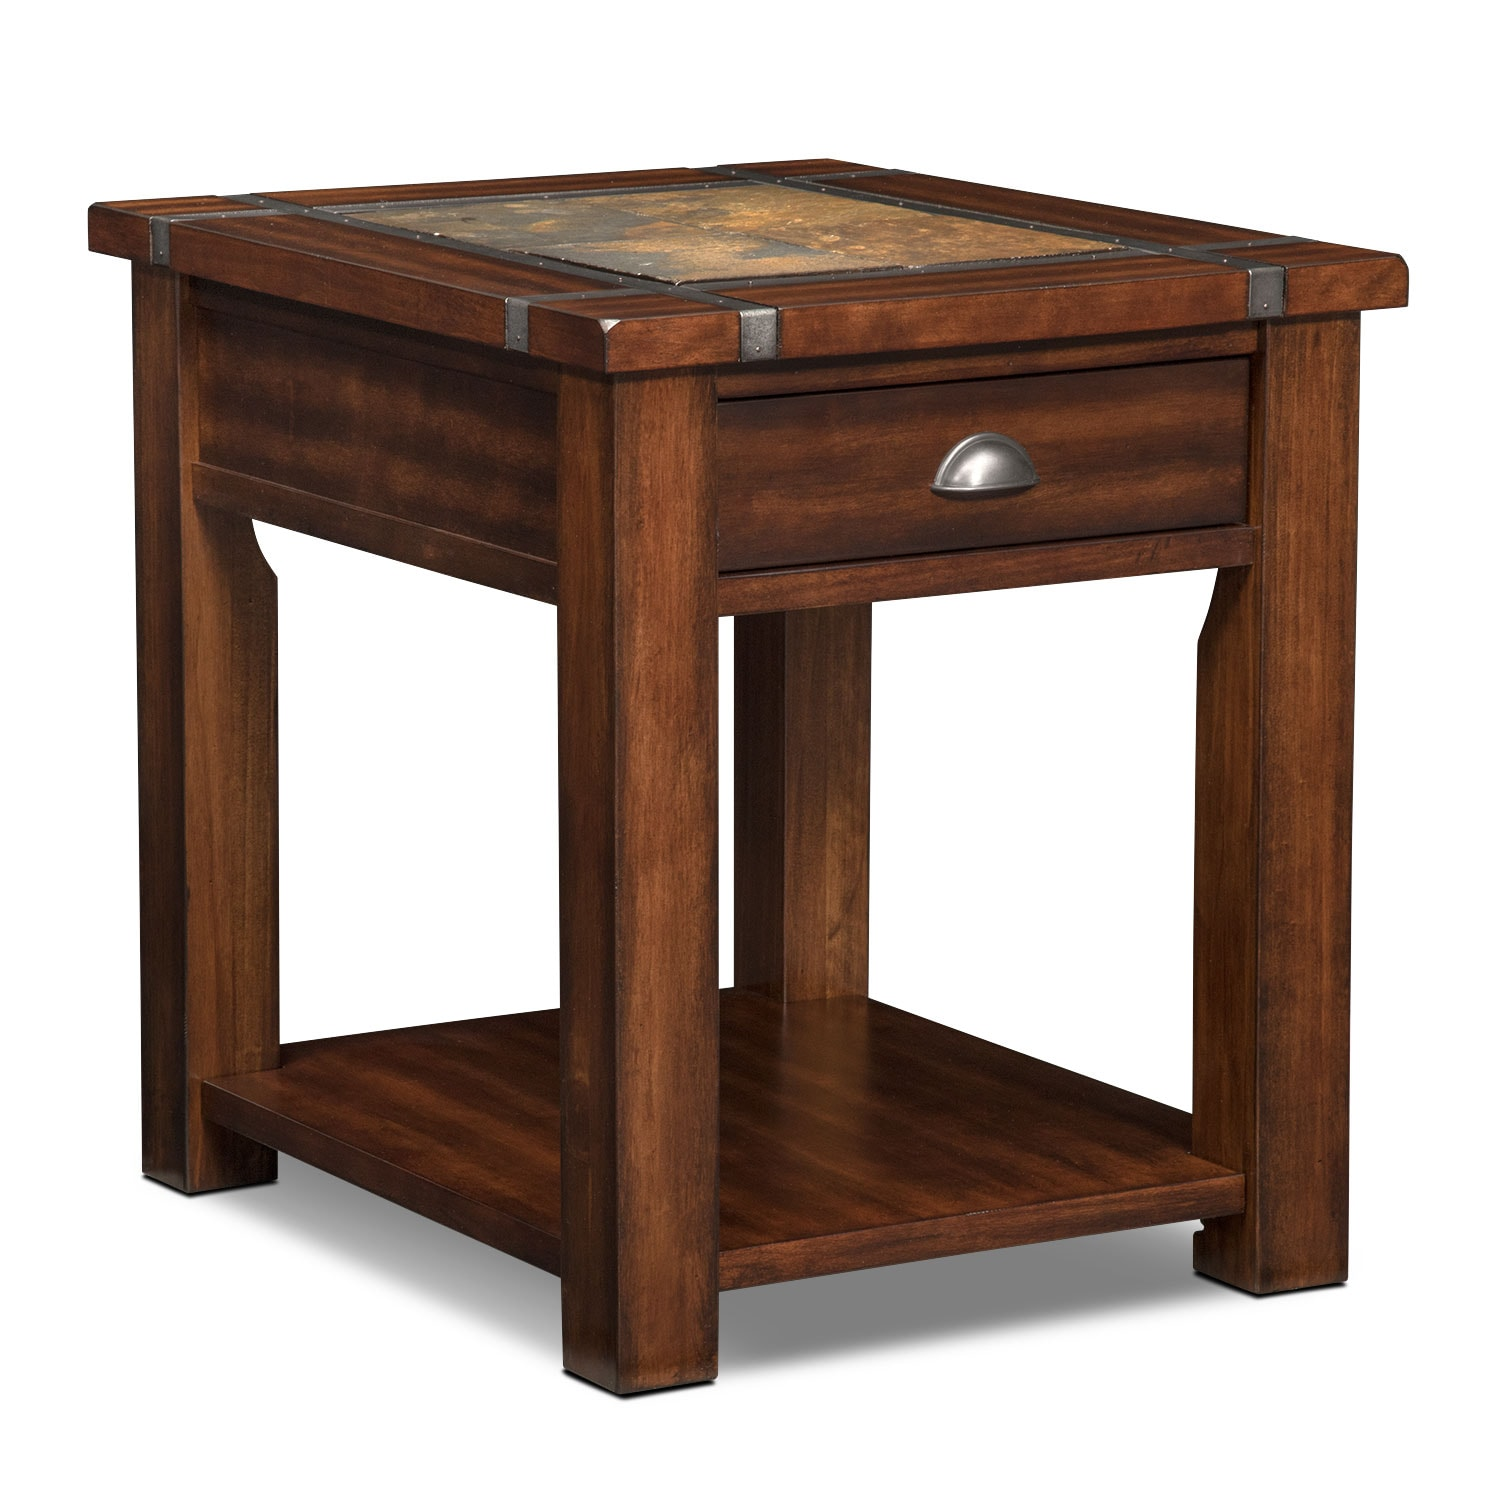 Solid Wood Coffee And End Tables For Sale: Slate Ridge End Table - Cherry